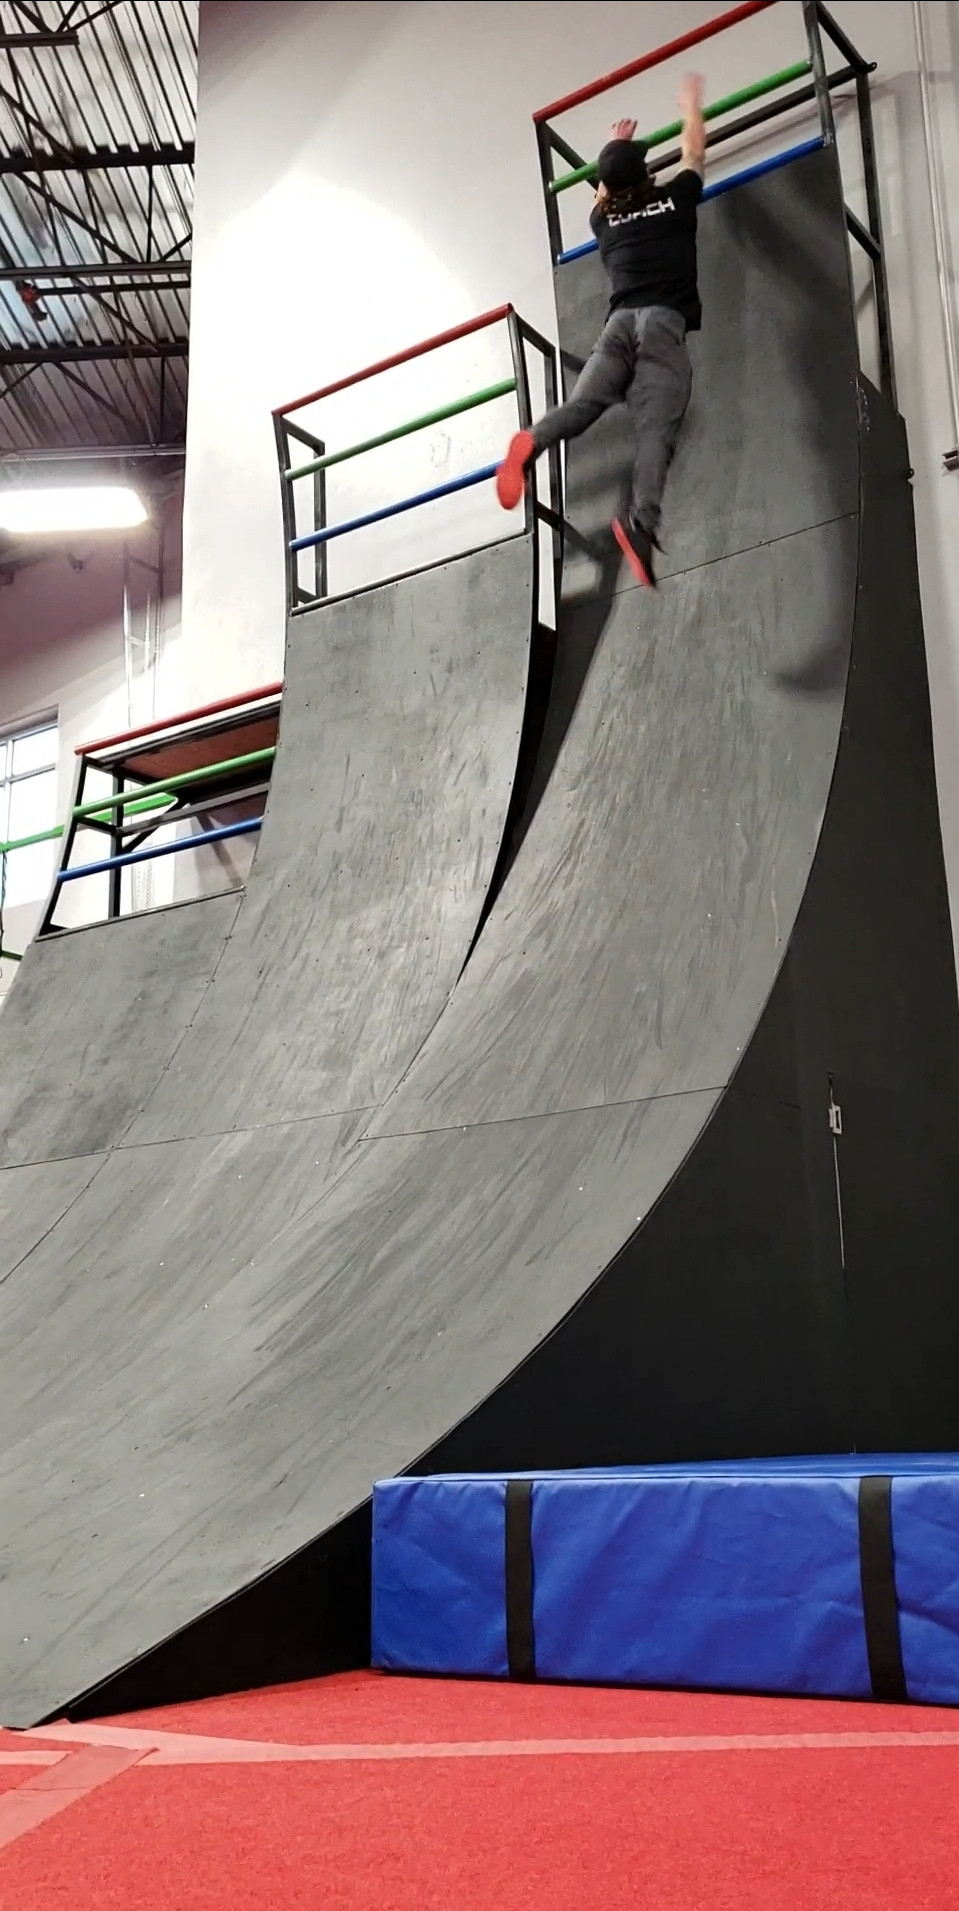 A person attempting the 18 foot Warped Wall.